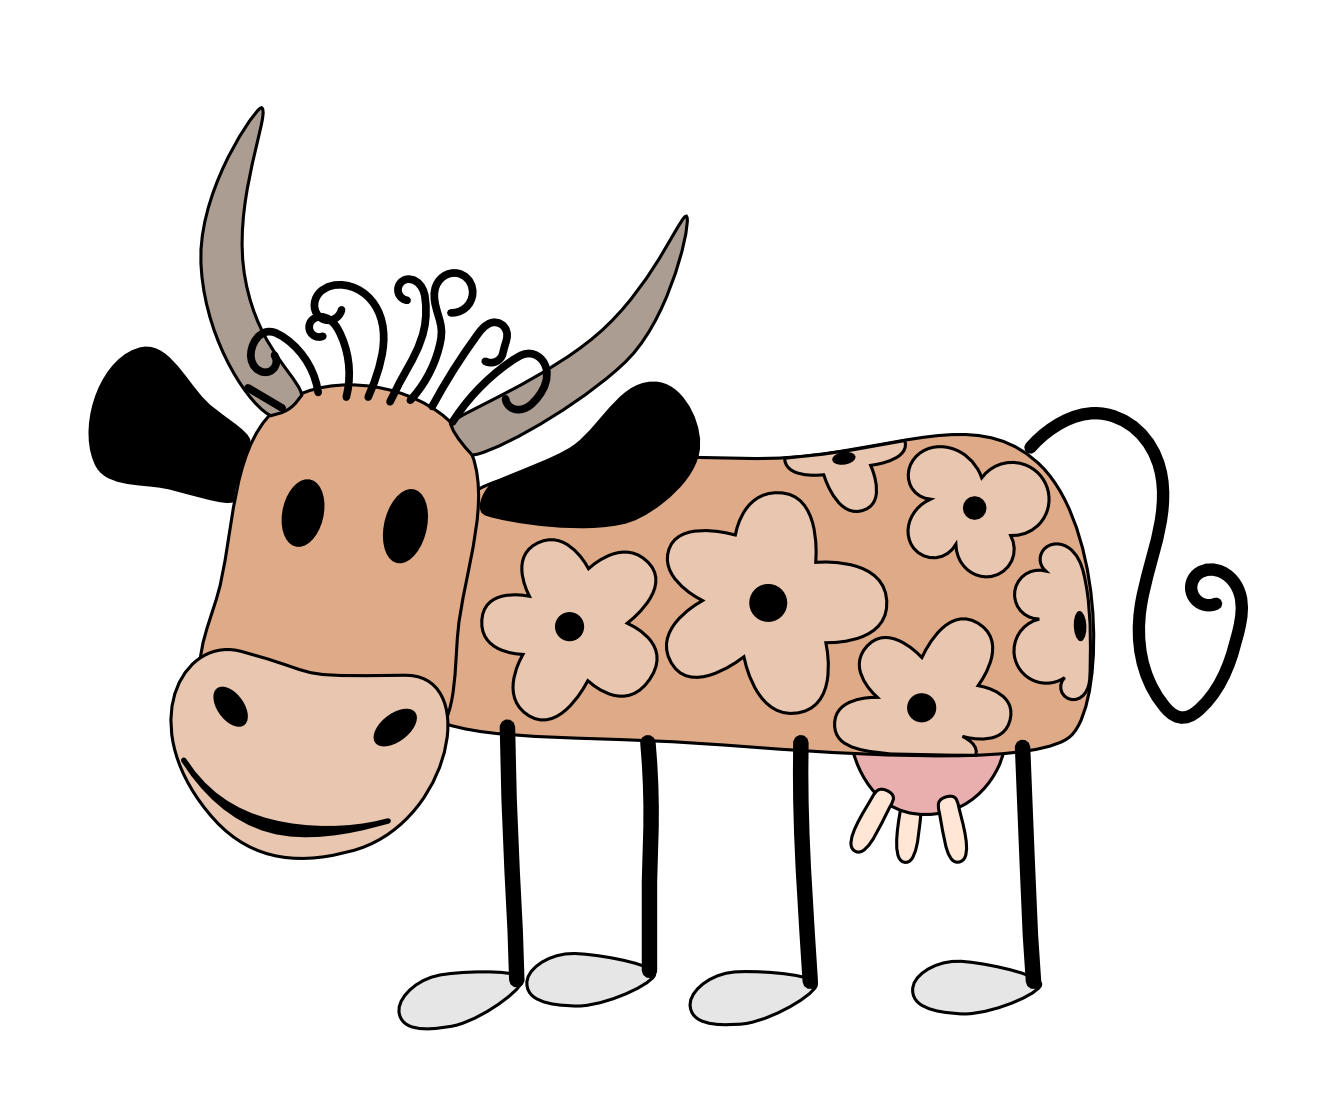 Geometry clipart cute. Cow panda free images